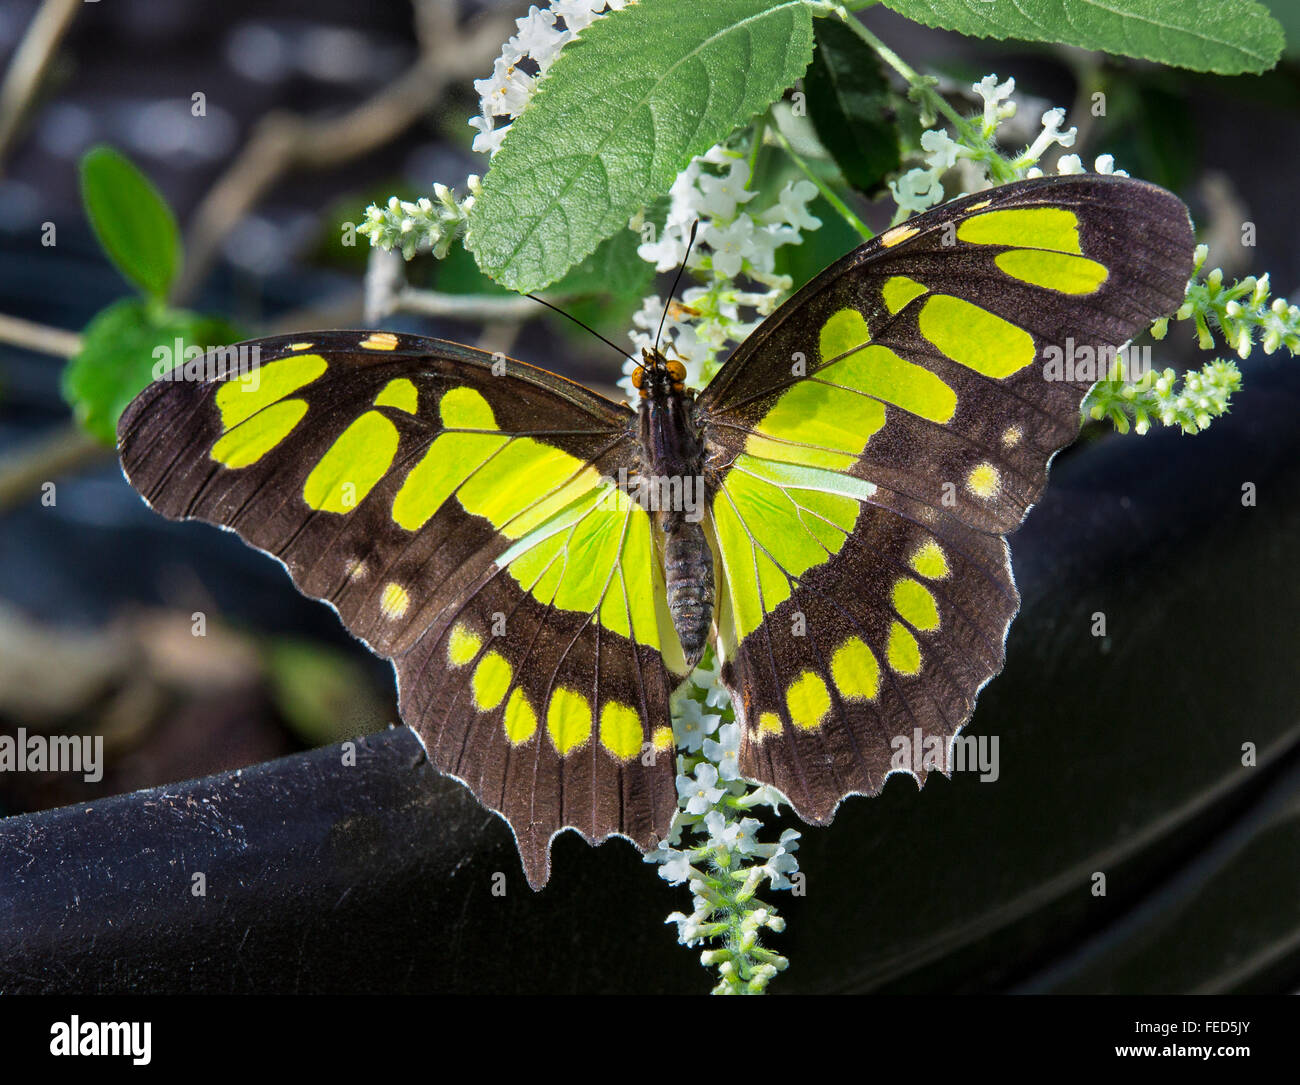 Closeup of Malachite Butterfly Siproeta stelenes on a flower at The Butterfly Estates in Fort Myers Florida - Stock Image